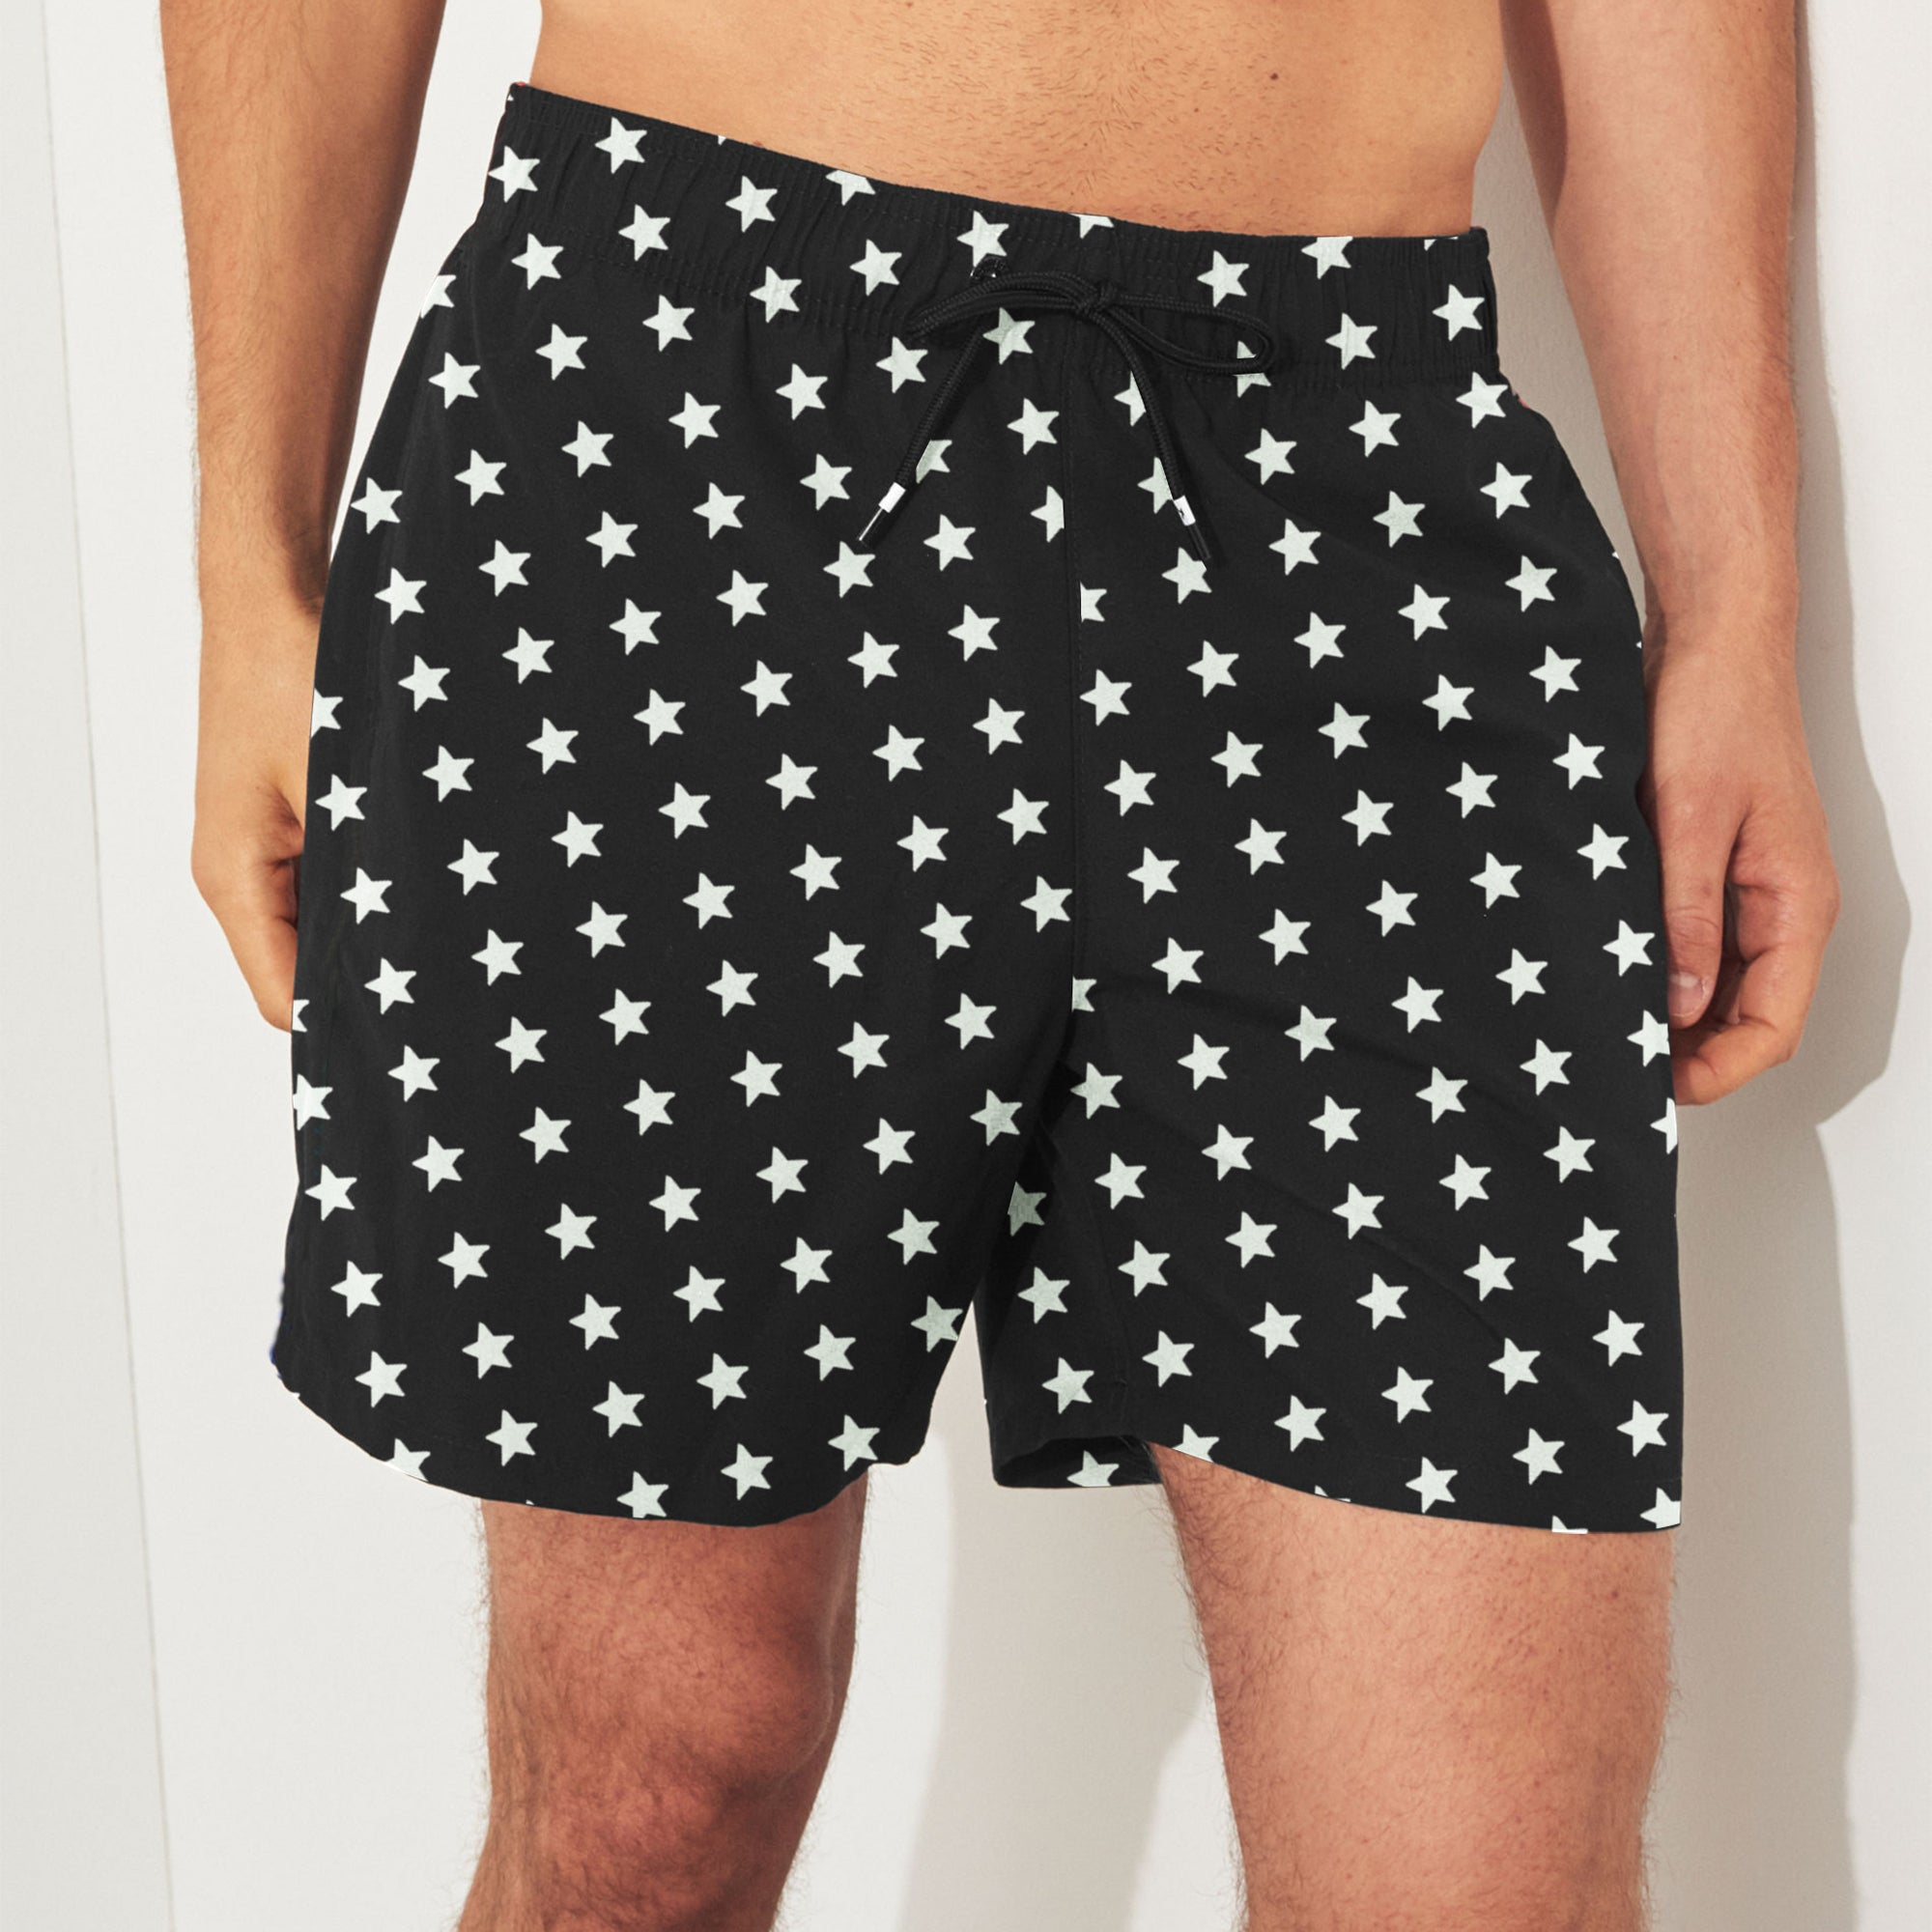 Unit Terry Fleece Short For Boys-Black With Stars-SP085